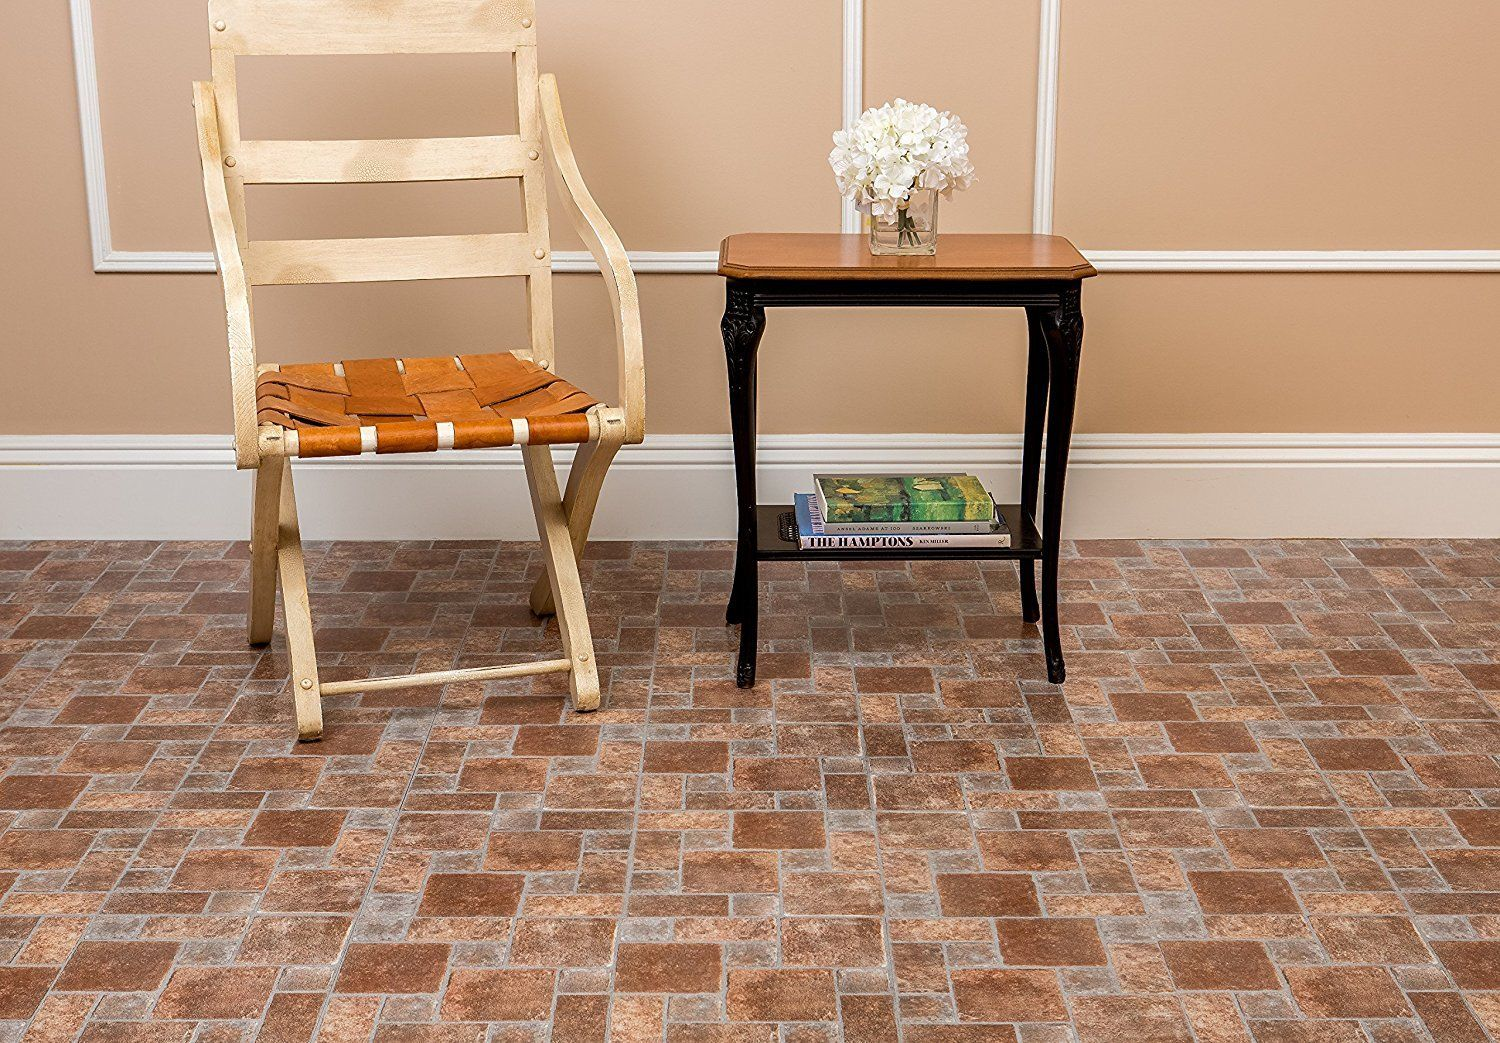 Vinyl flooring tiles self stick